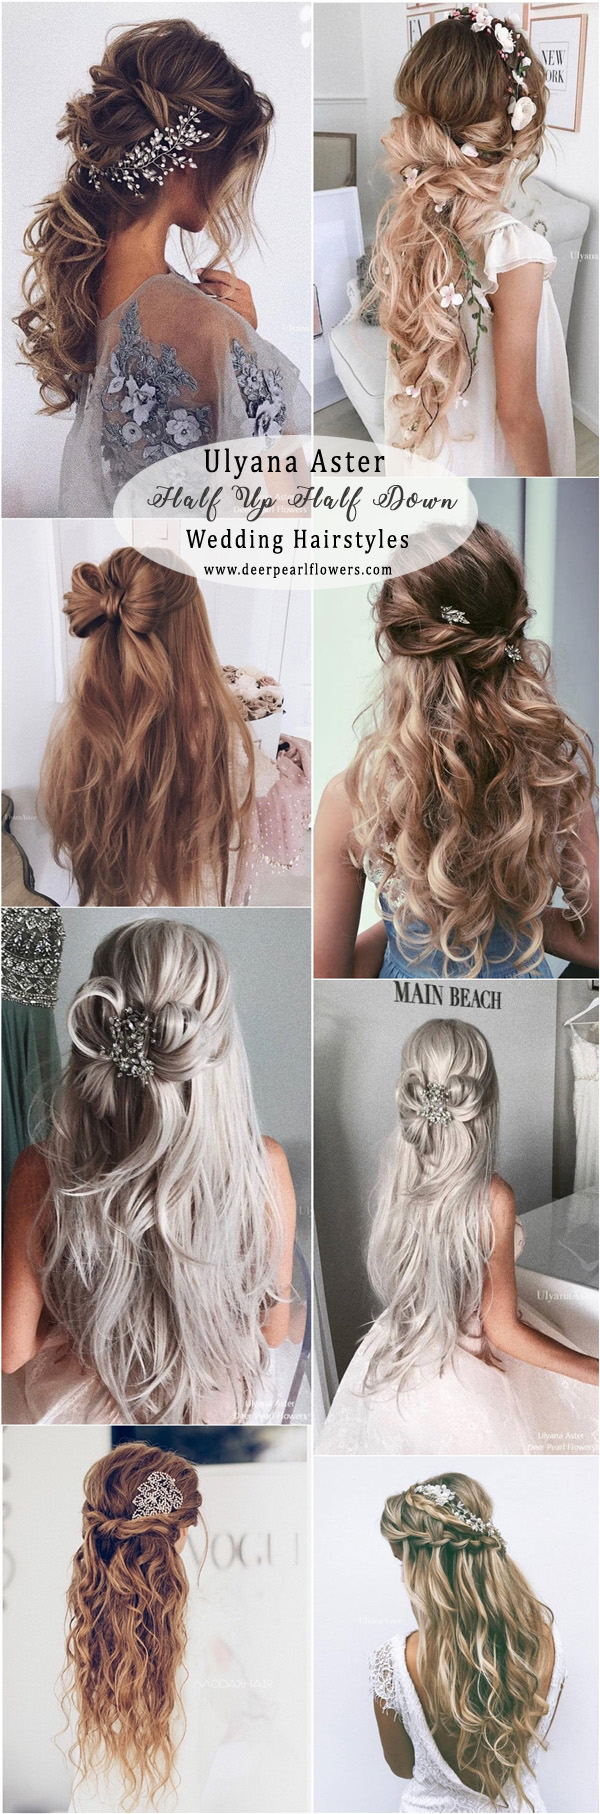 +10 Best Half Up Half Down Wedding Hairstyle Ideas 6